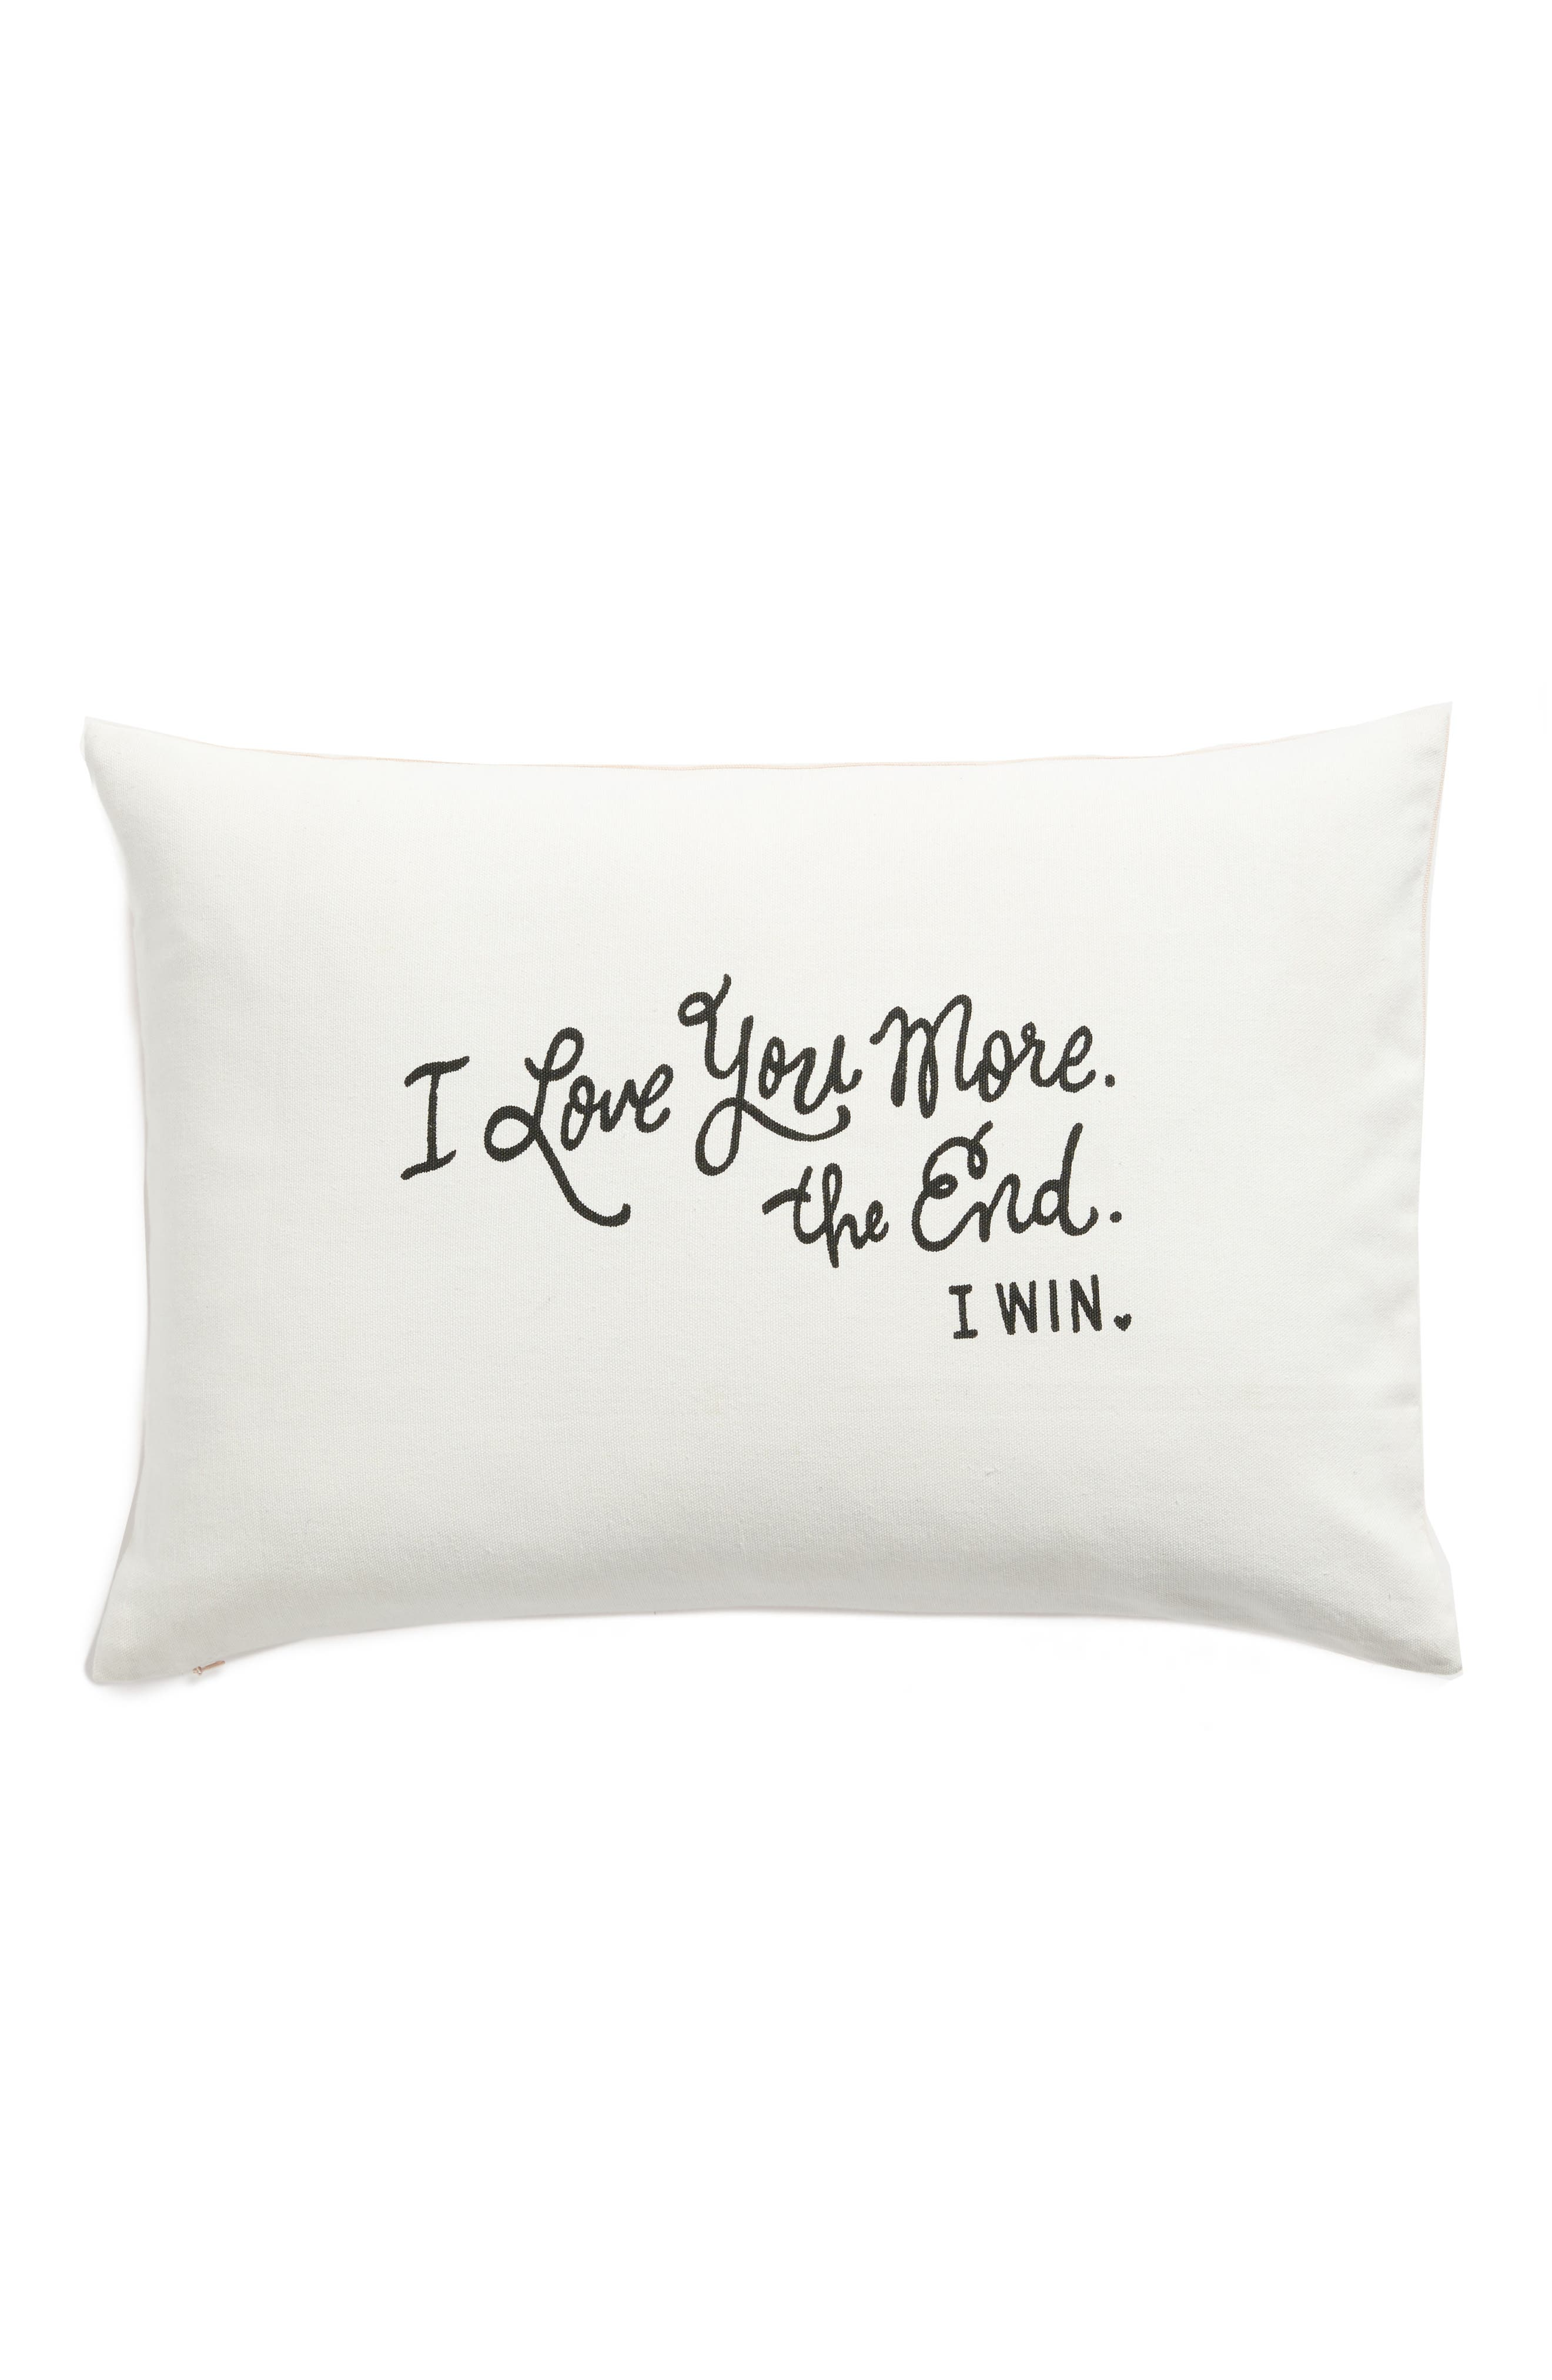 nordstrom at home i love you more accent pillow